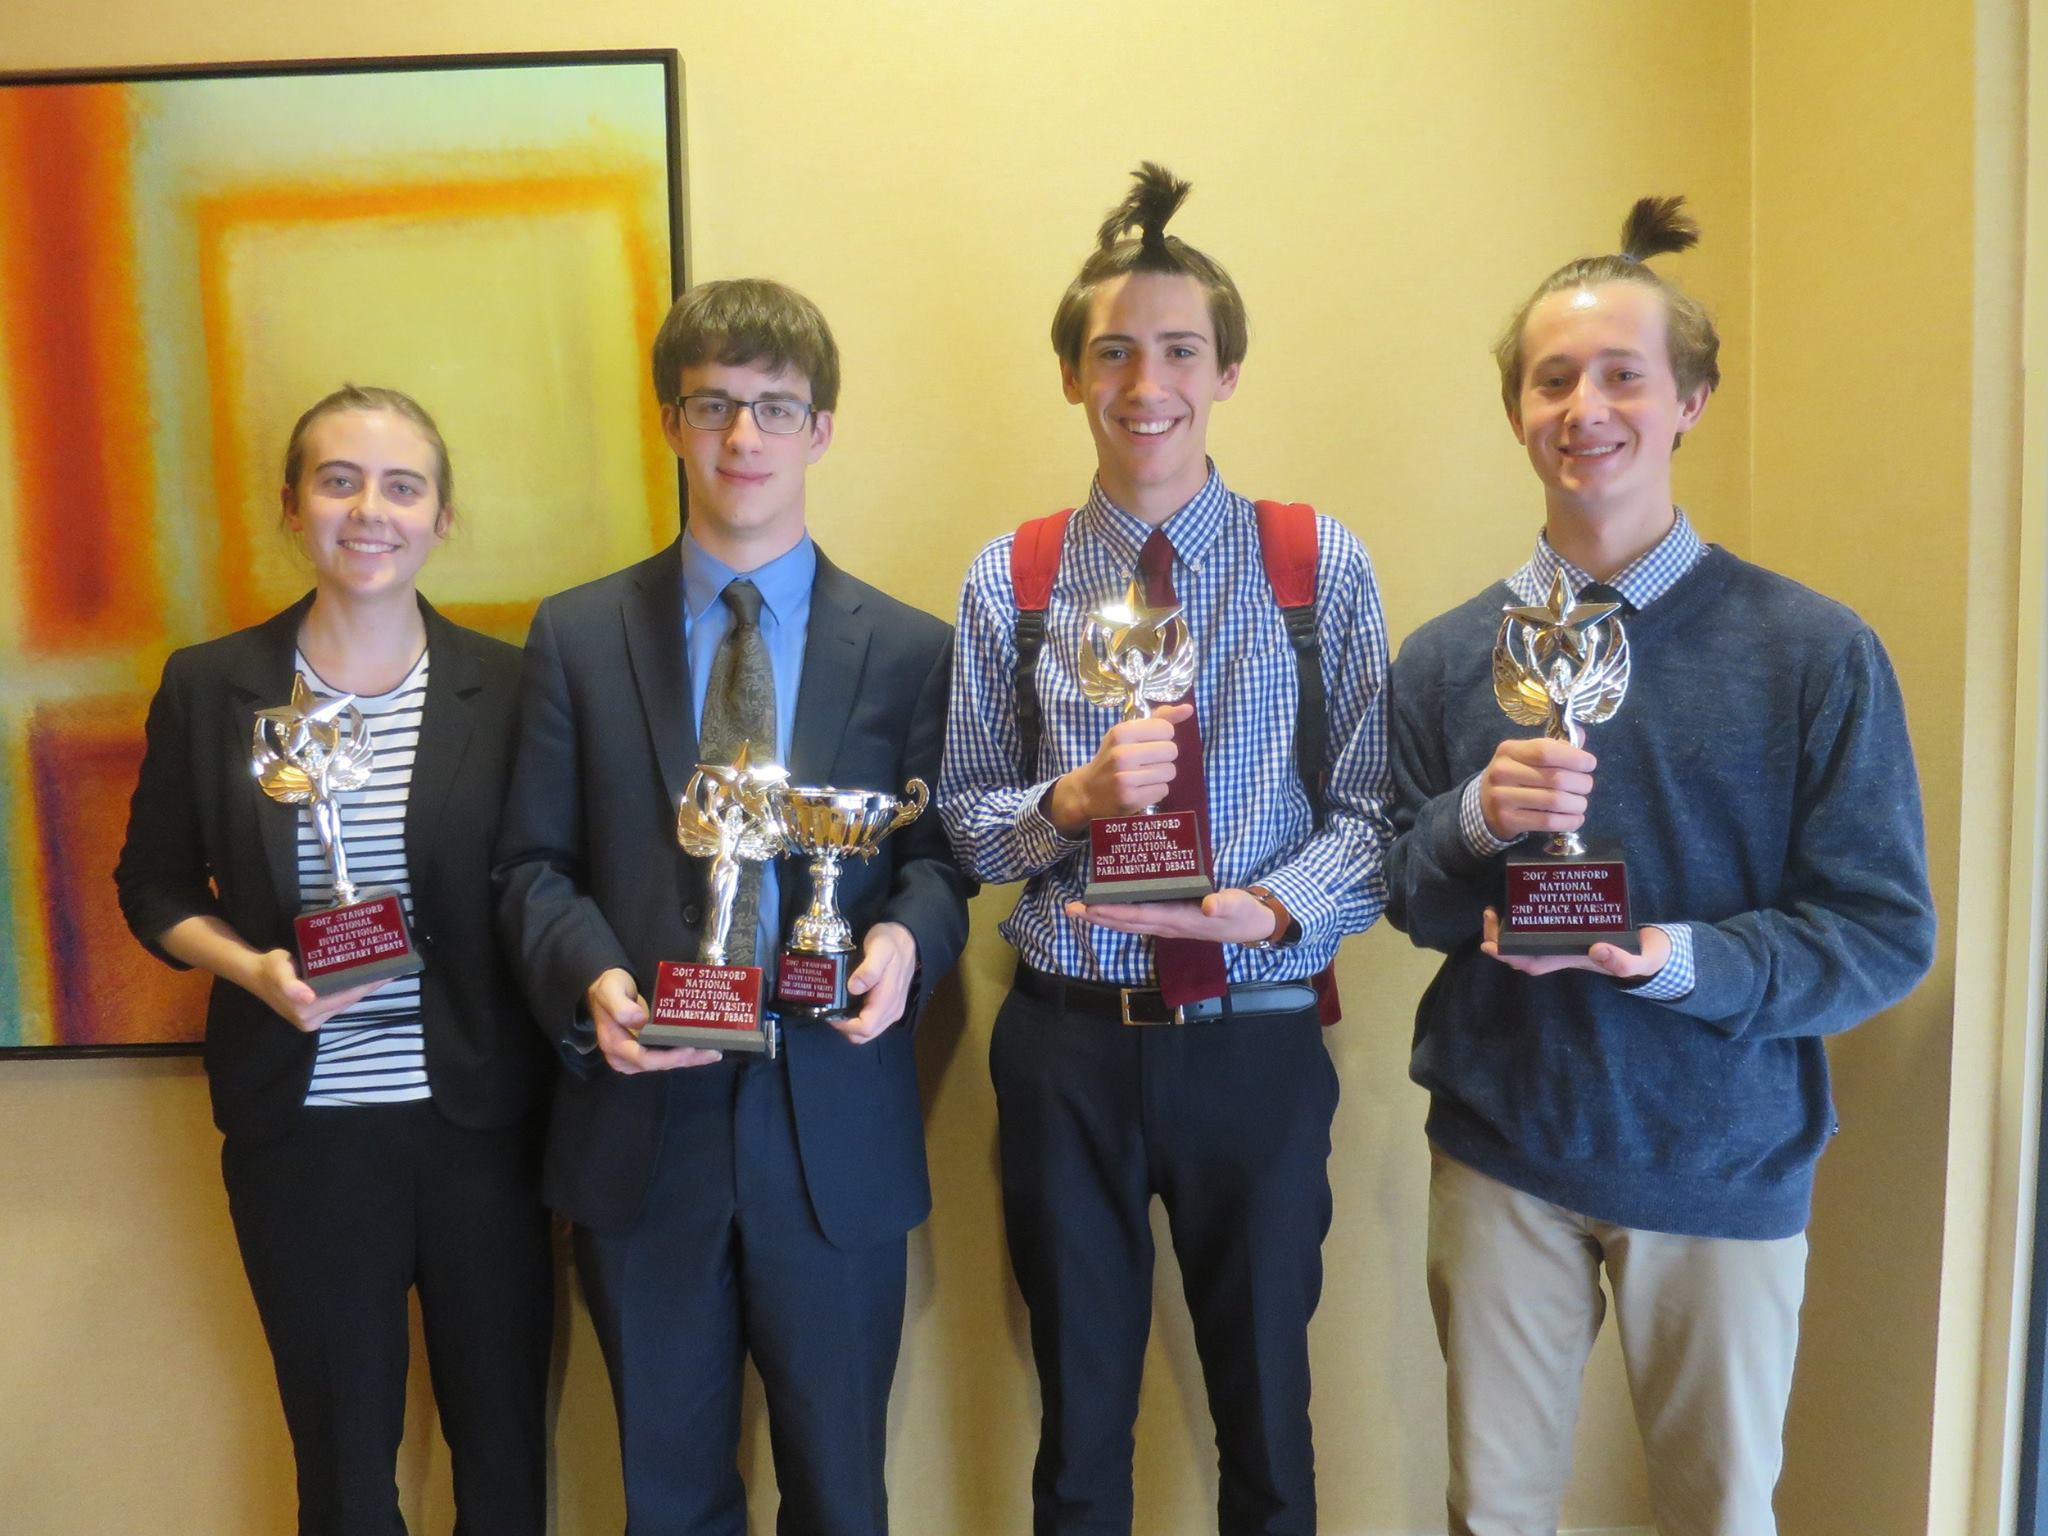 Tournament champions Lilly Hackworth & Spencer Dembner pose alongside finalists Rob Stallman & John Ropp after the final round.